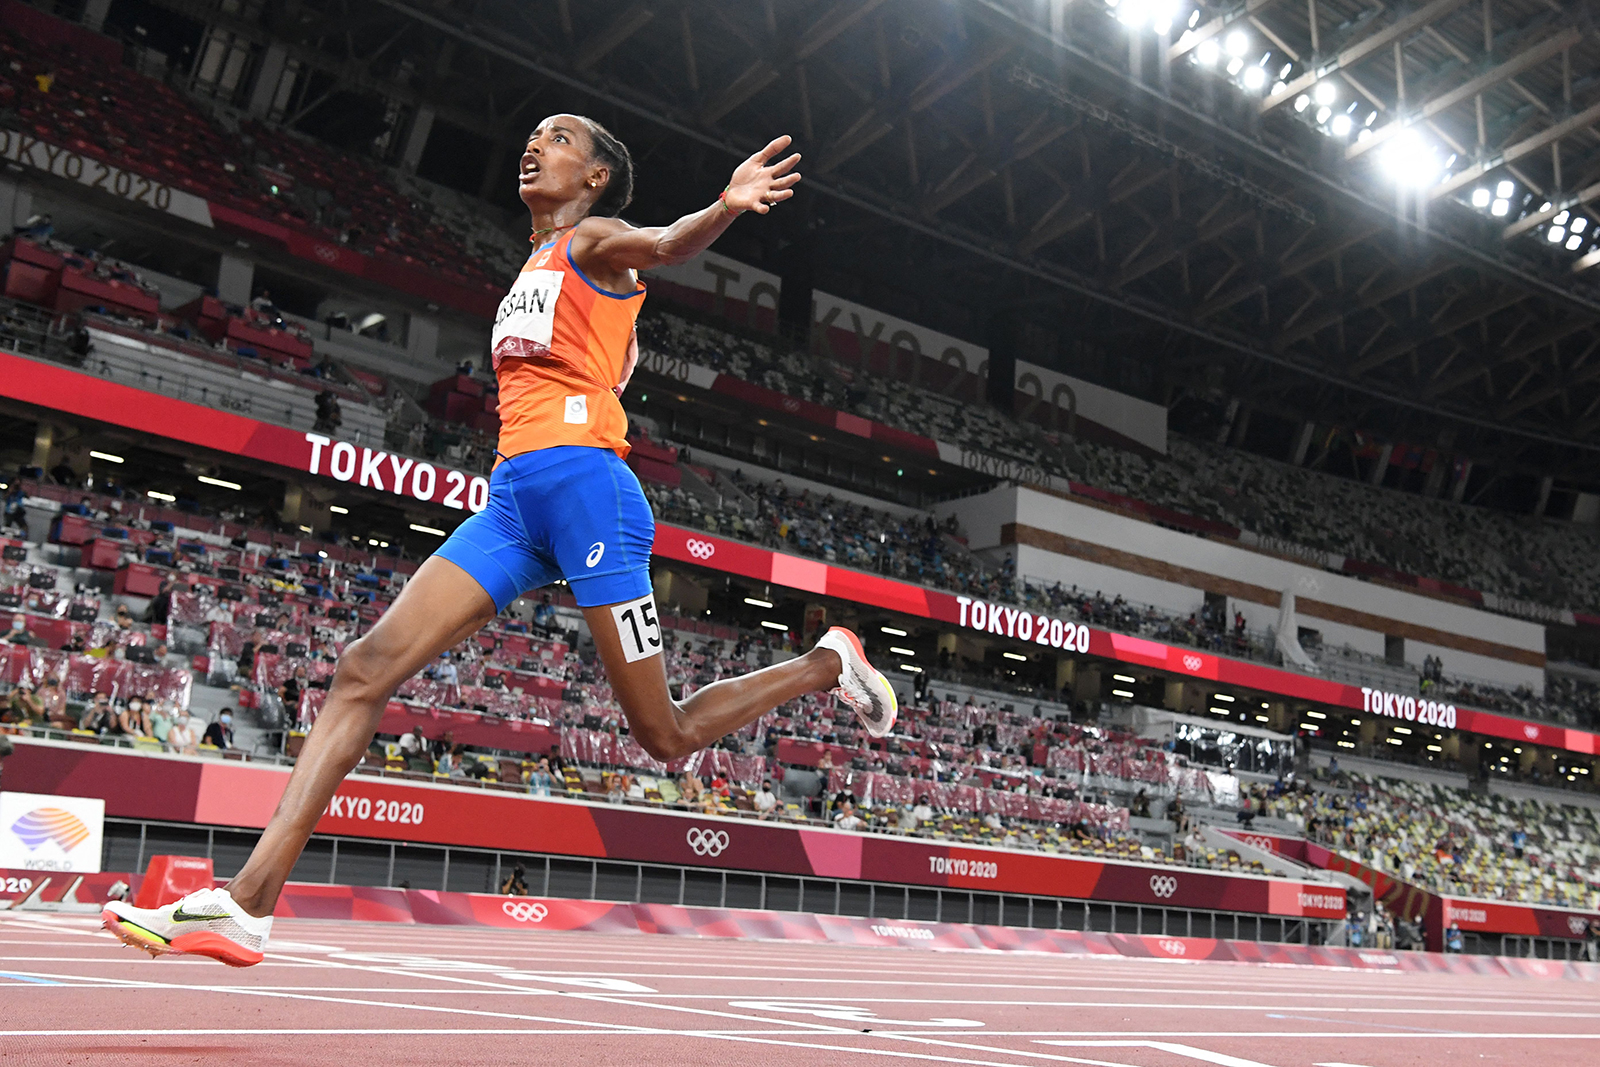 Netherlands' Sifan Hassan celebrates as she wins the women's 10,000m final during the Tokyo 2020 Olympic Games at the Olympic Stadium in Tokyo on August 7.